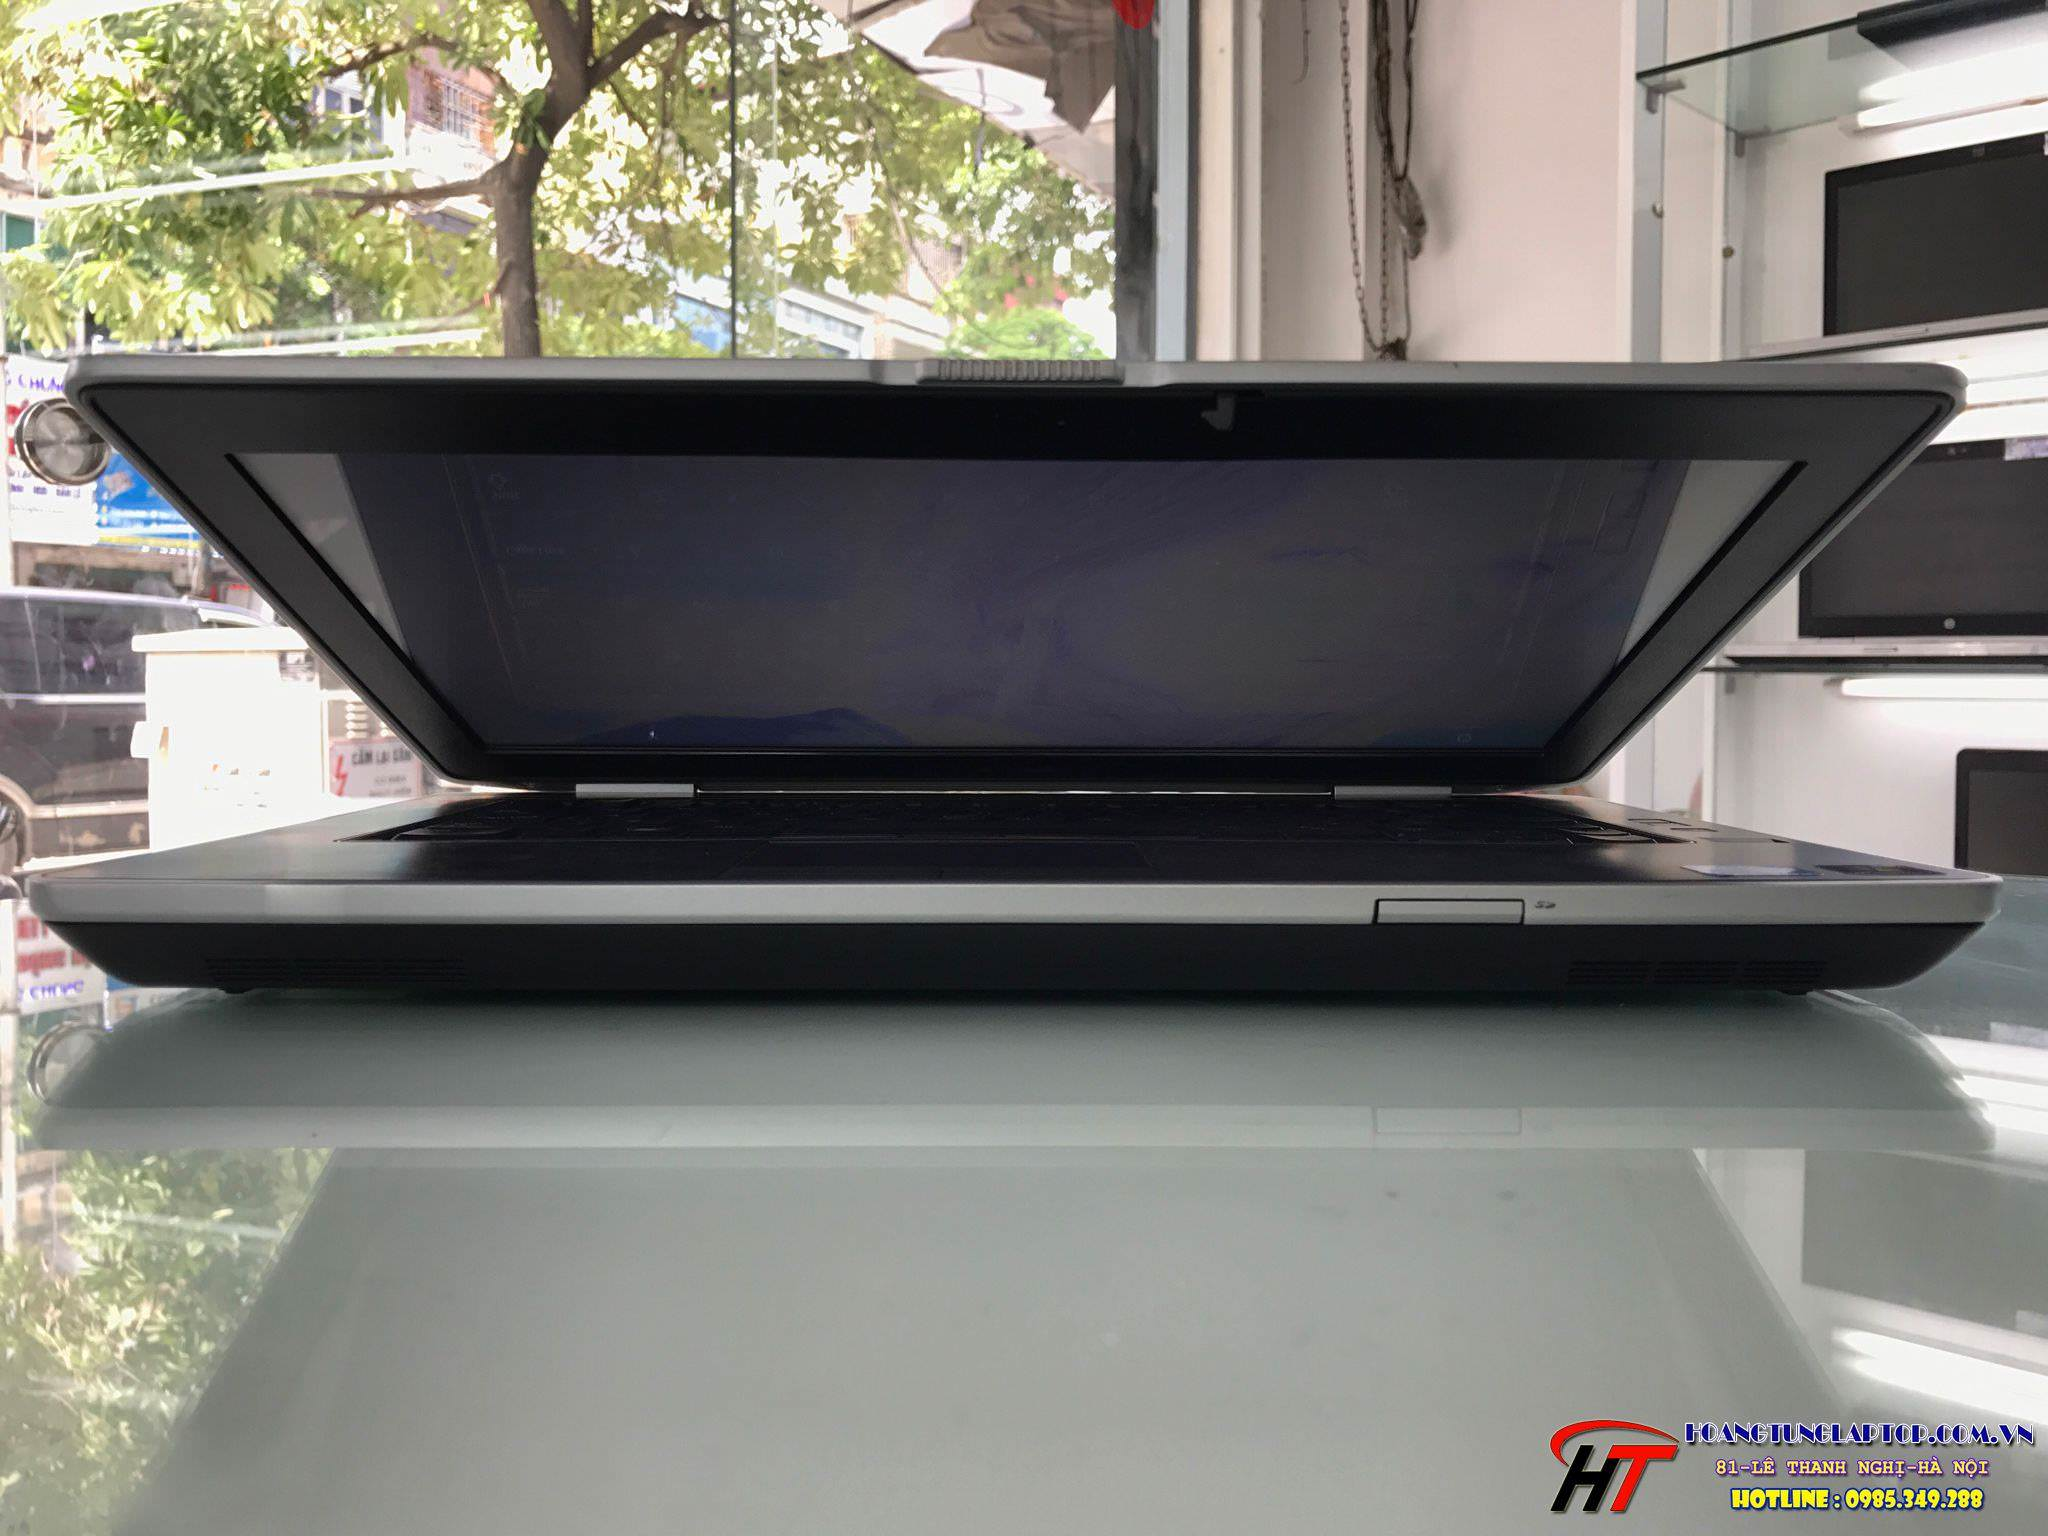 Laptop Dell Latitude E6420 cũ 7